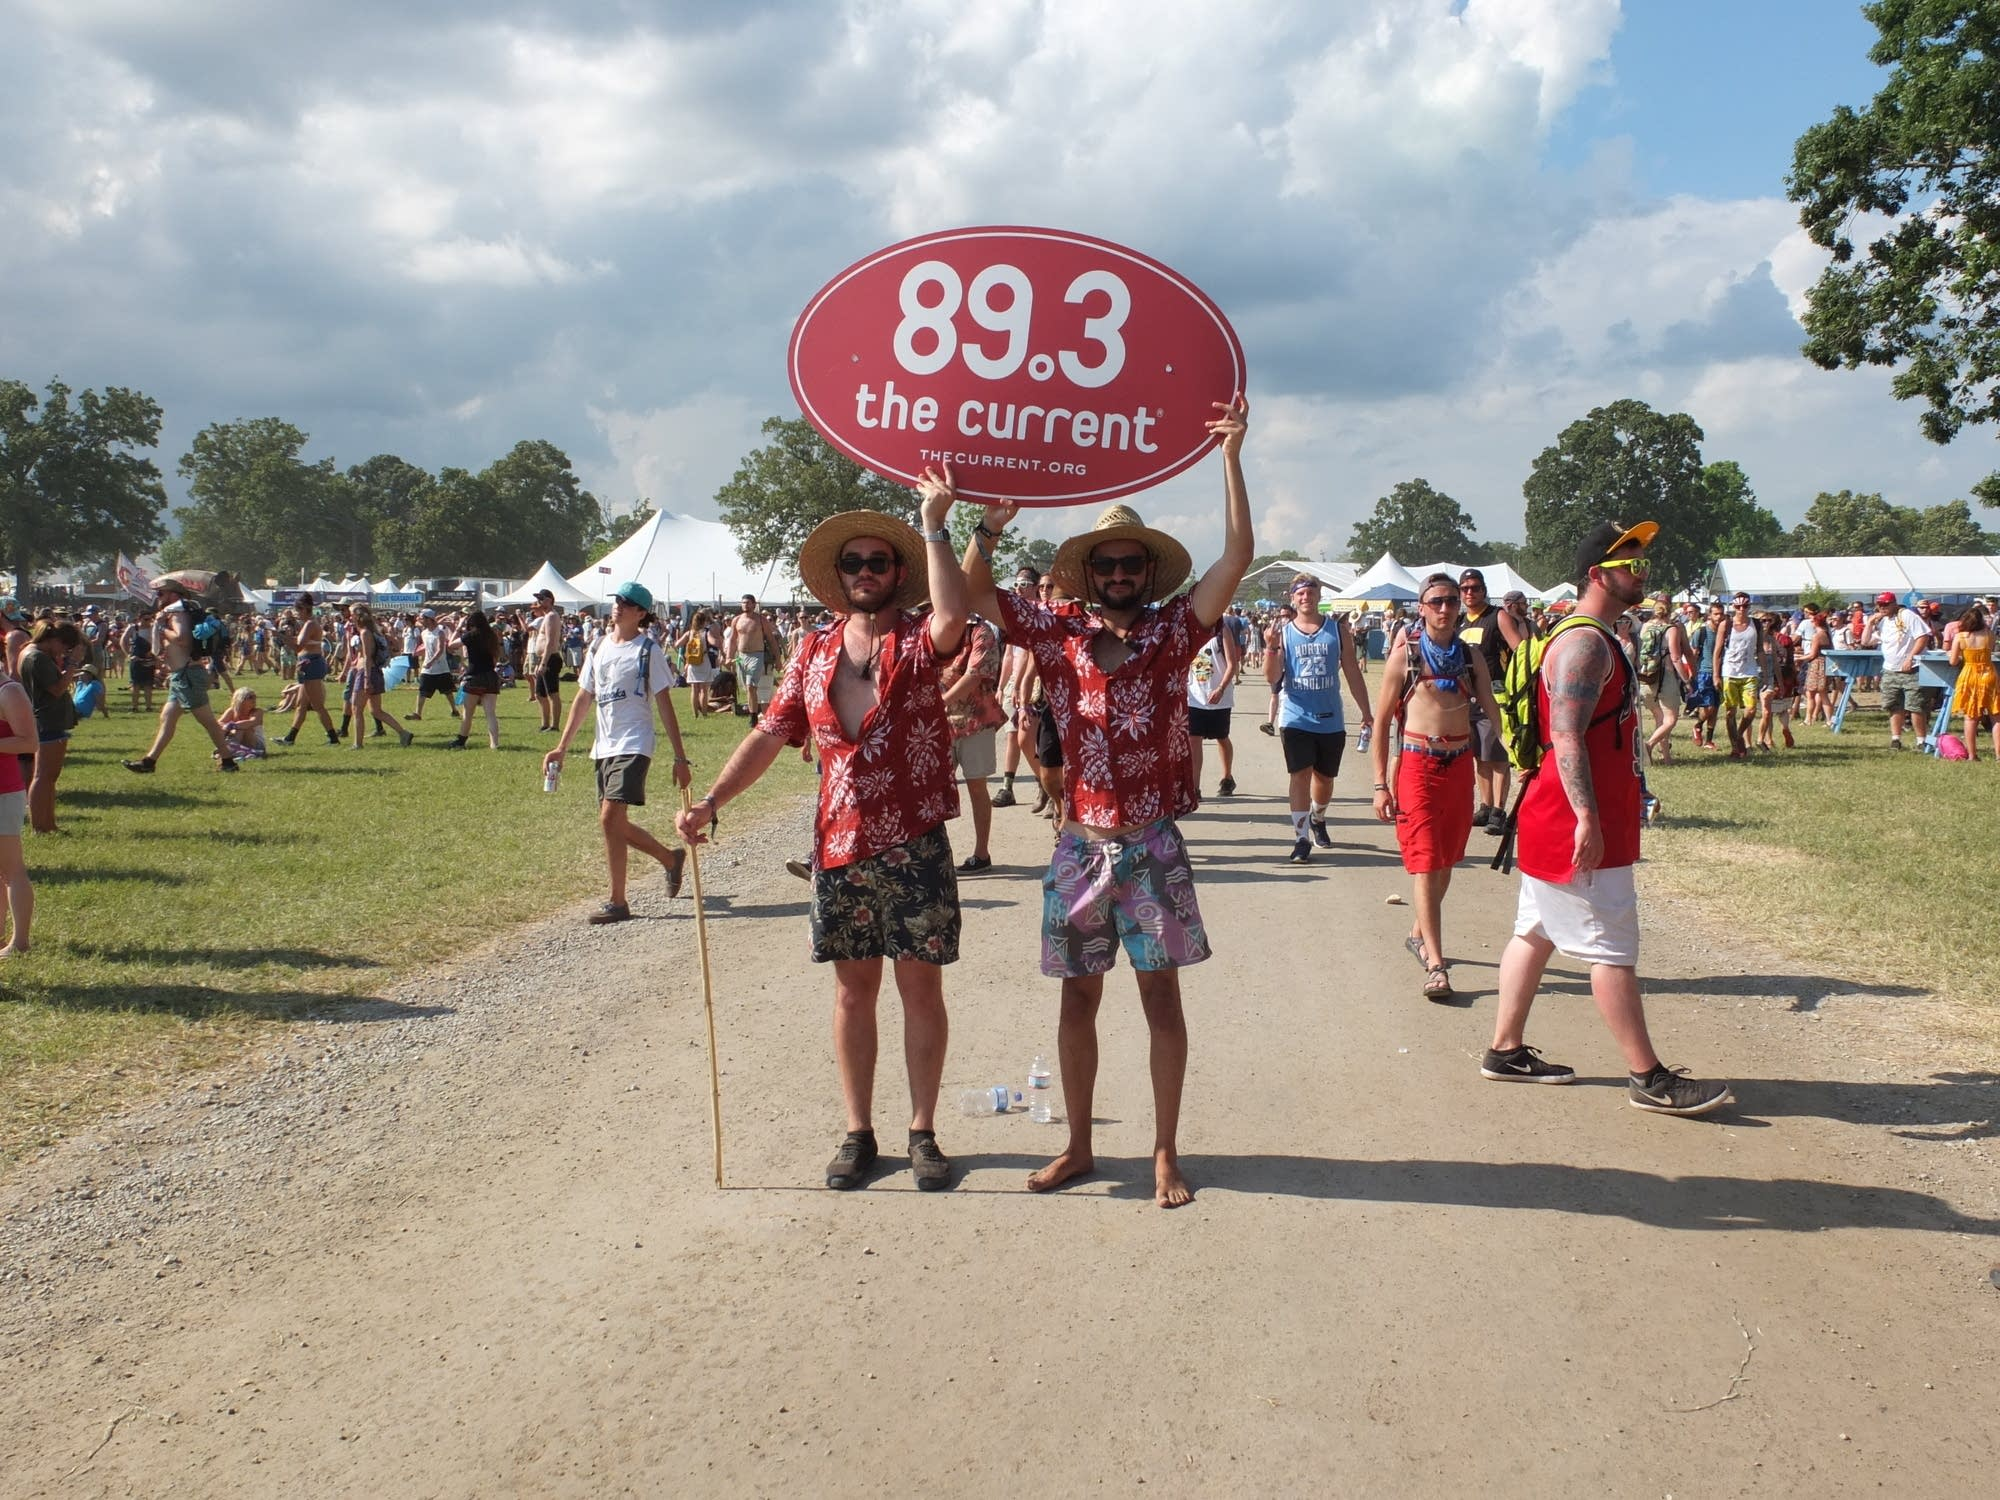 Fans of The Current at Bonnaroo.